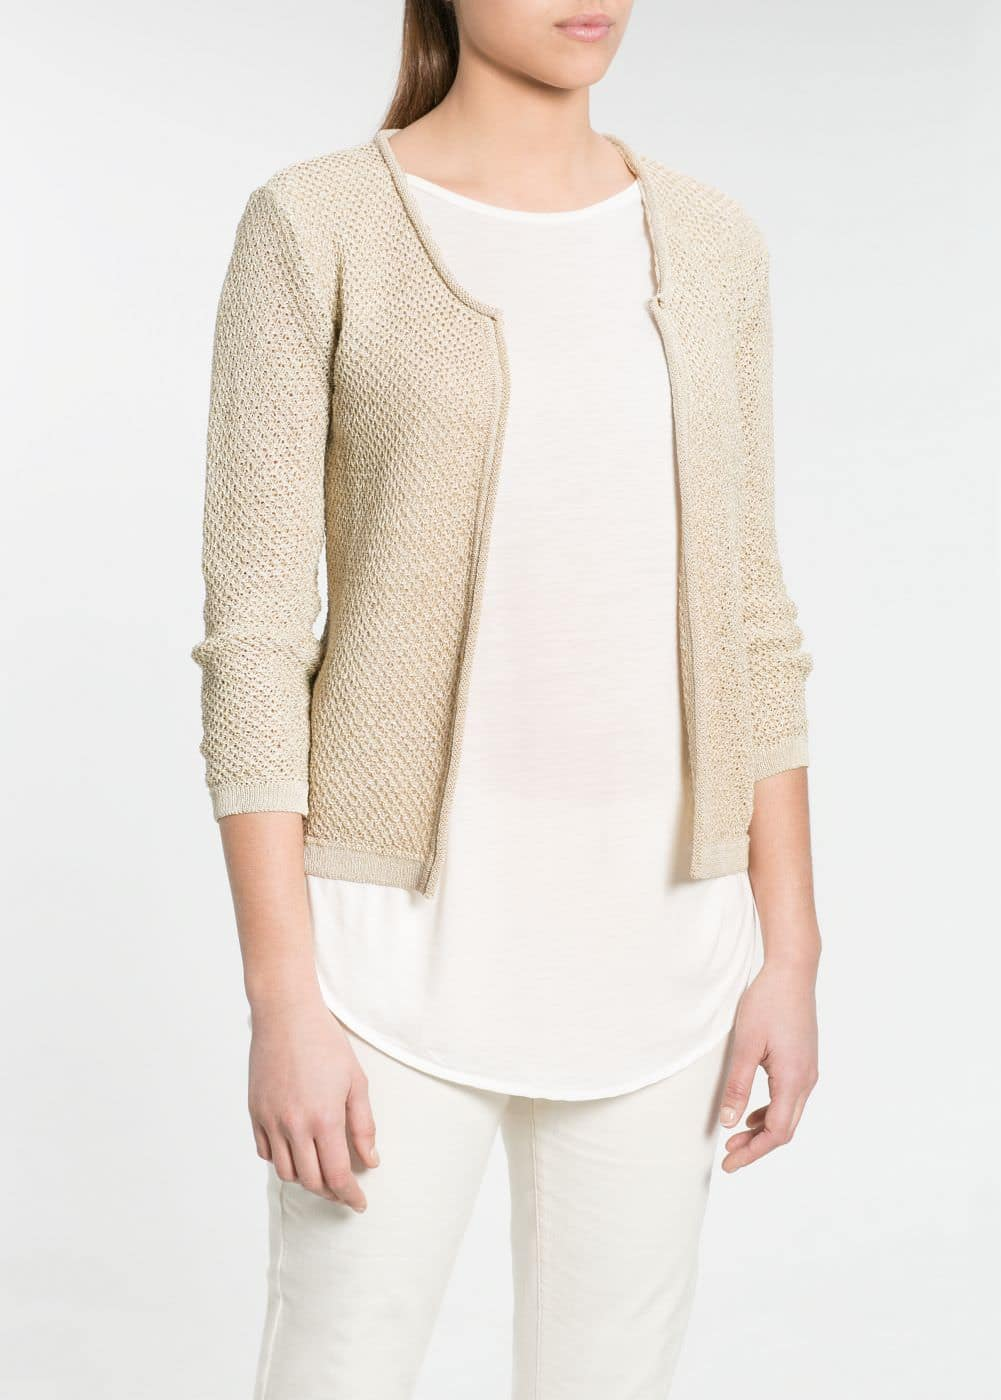 Fancy knit jacket